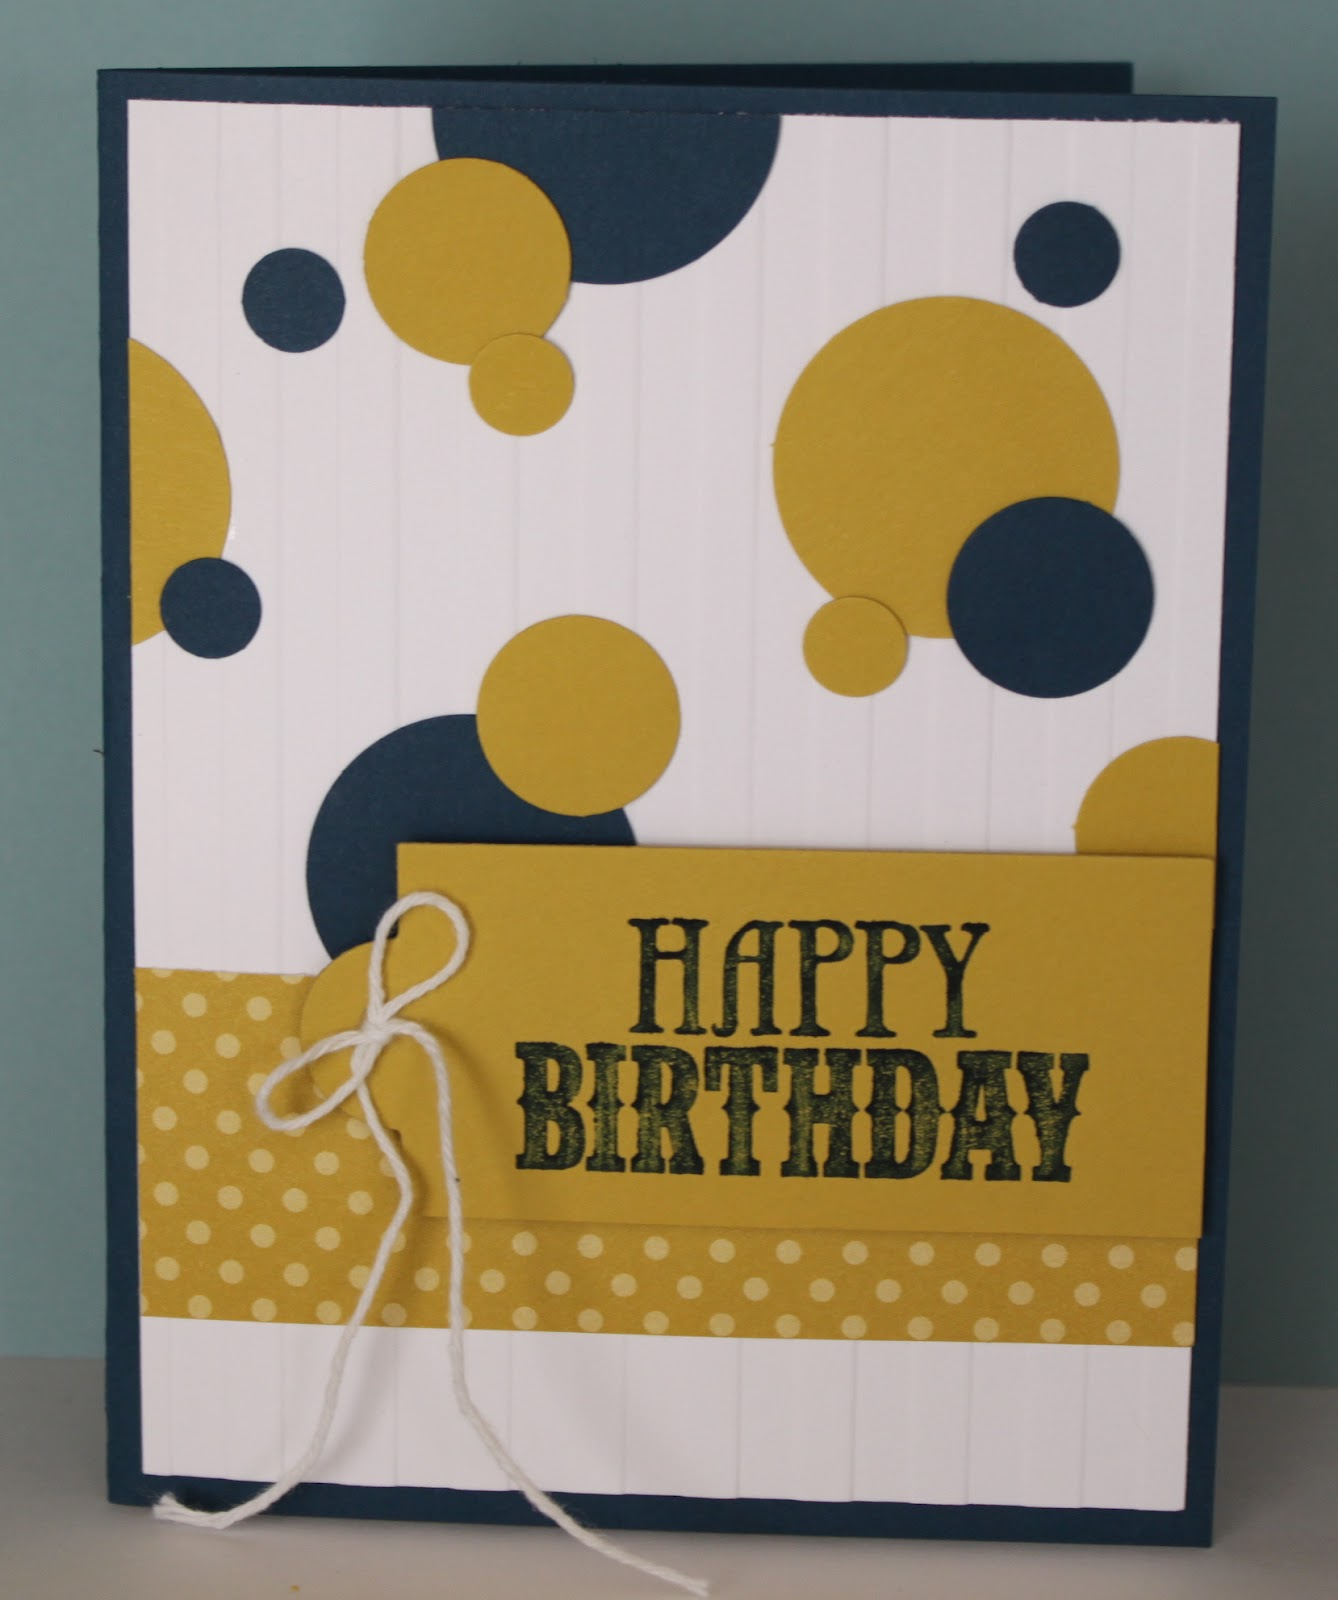 Easy To Make Birthday Cards – gangcraft